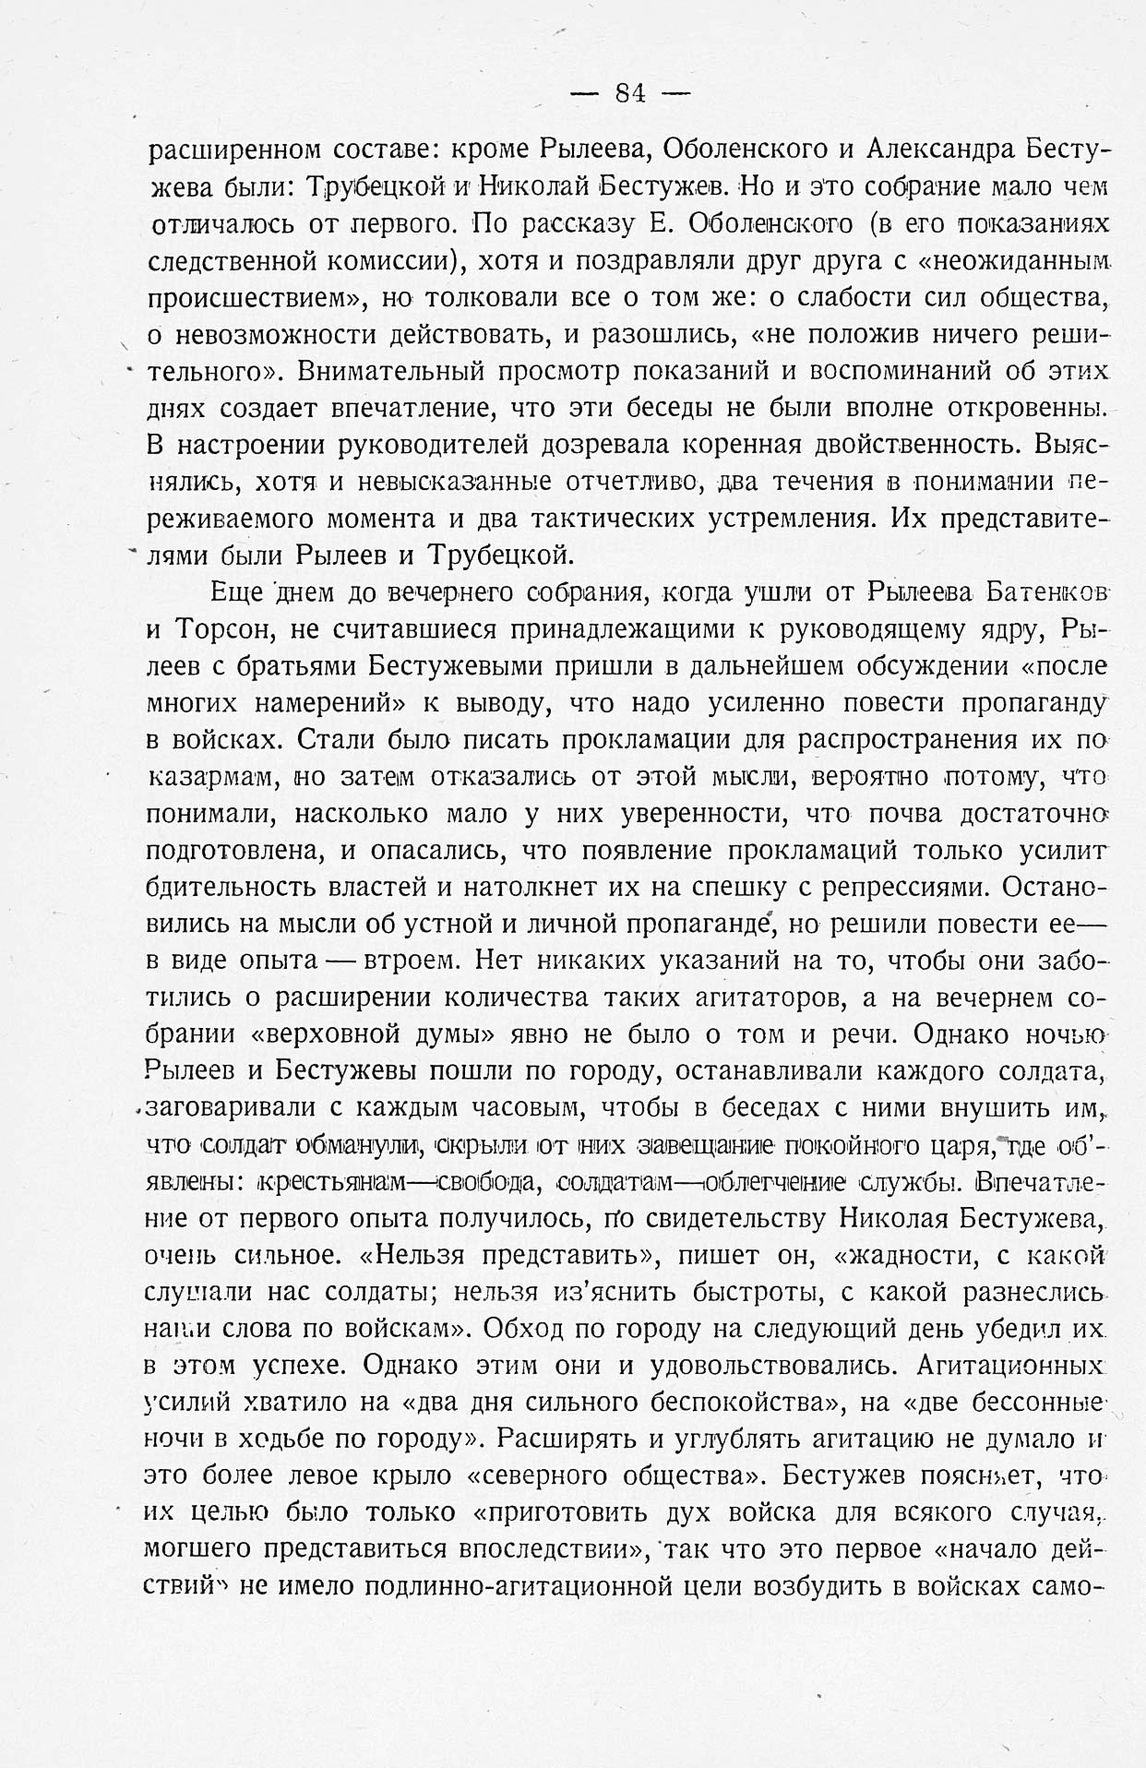 http://elib.shpl.ru/pages/565981/zooms/7